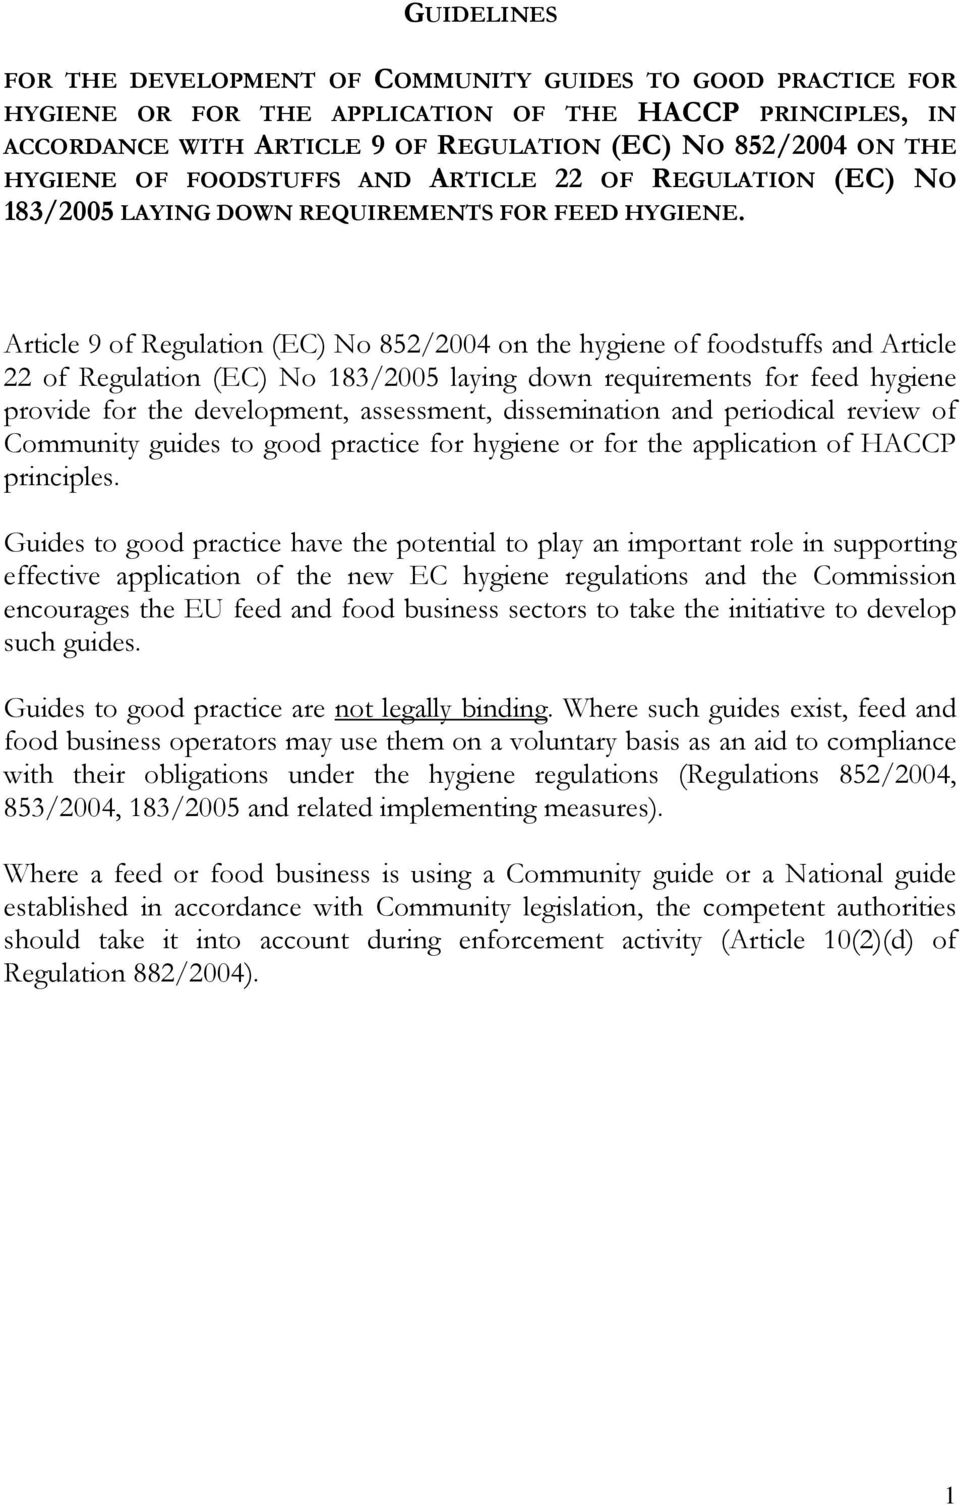 Article 9 of Regulation (EC) No 852/2004 on the hygiene of foodstuffs and Article 22 of Regulation (EC) No 183/2005 laying down requirements for feed hygiene provide for the development, assessment,